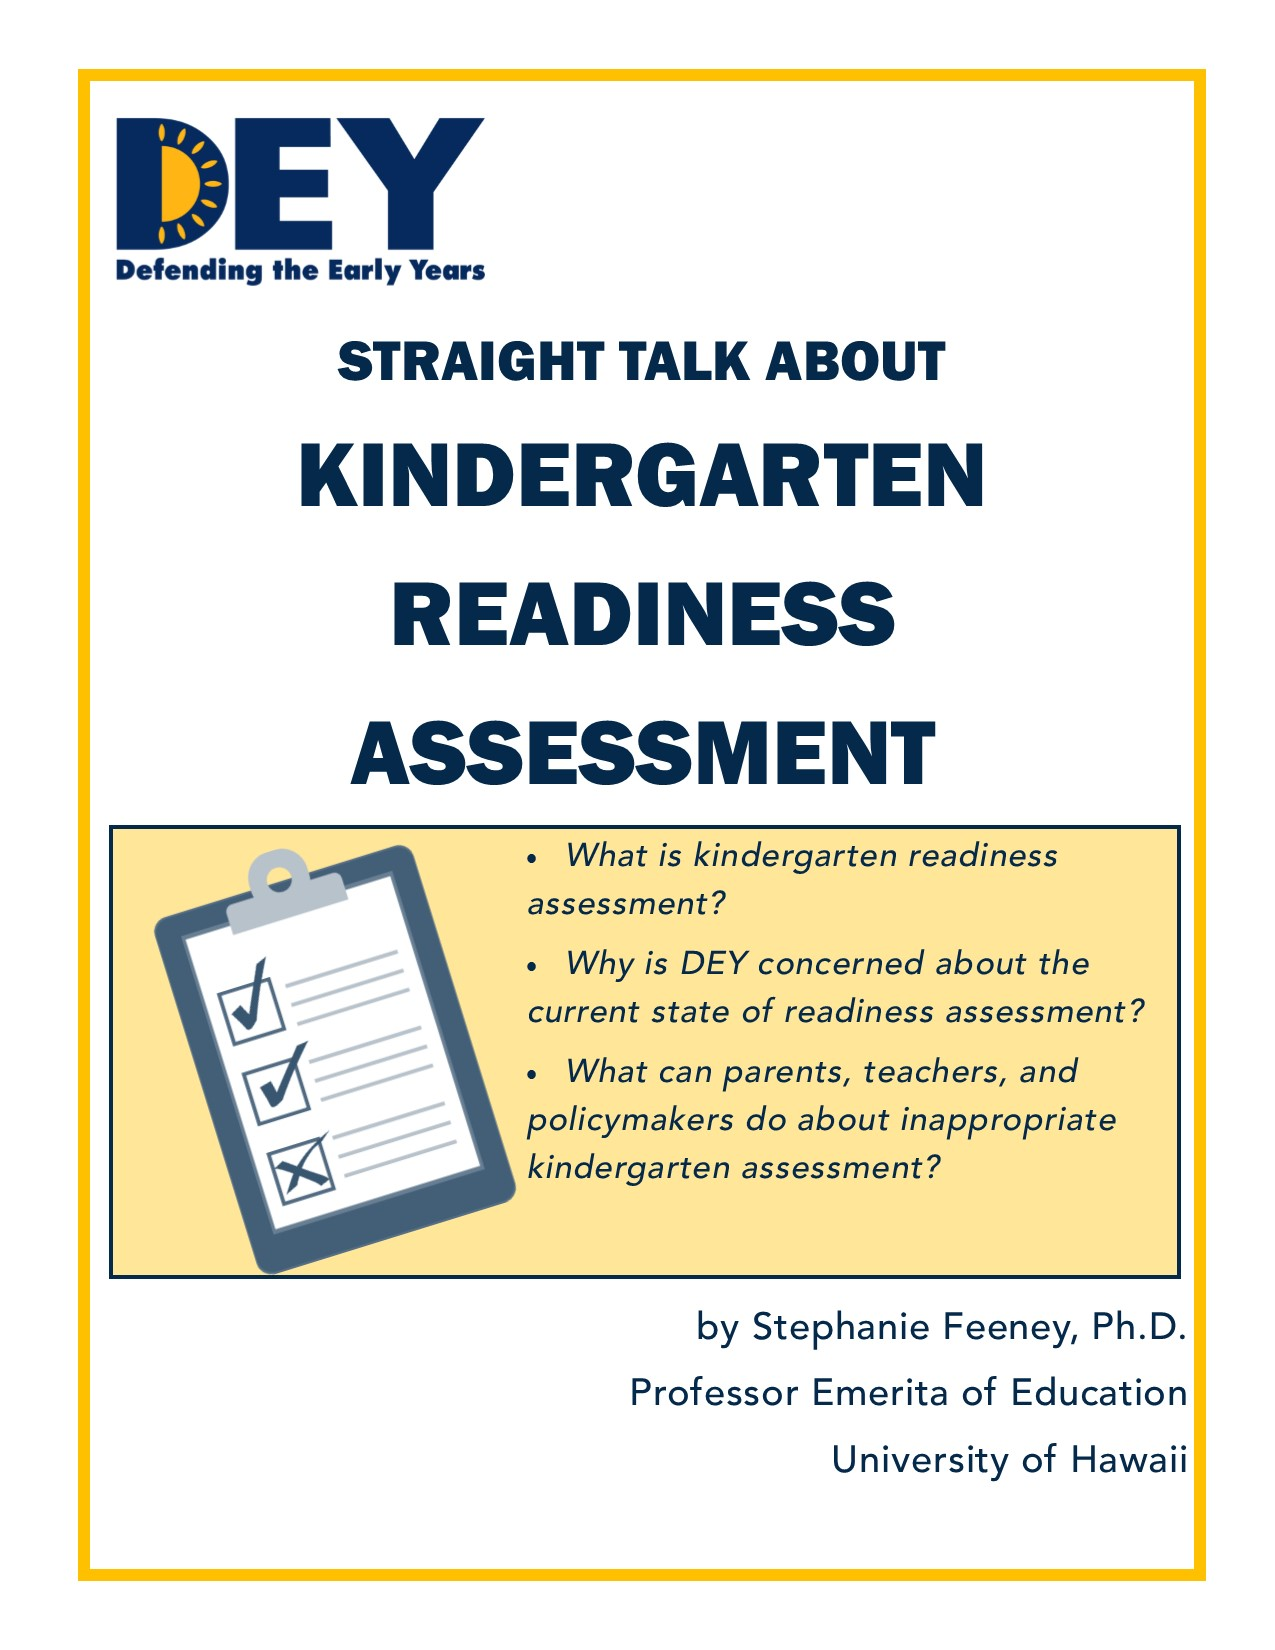 NEW* Straight Talk About Kindergarten Readiness Assessment: Click on the  image below to read and download.